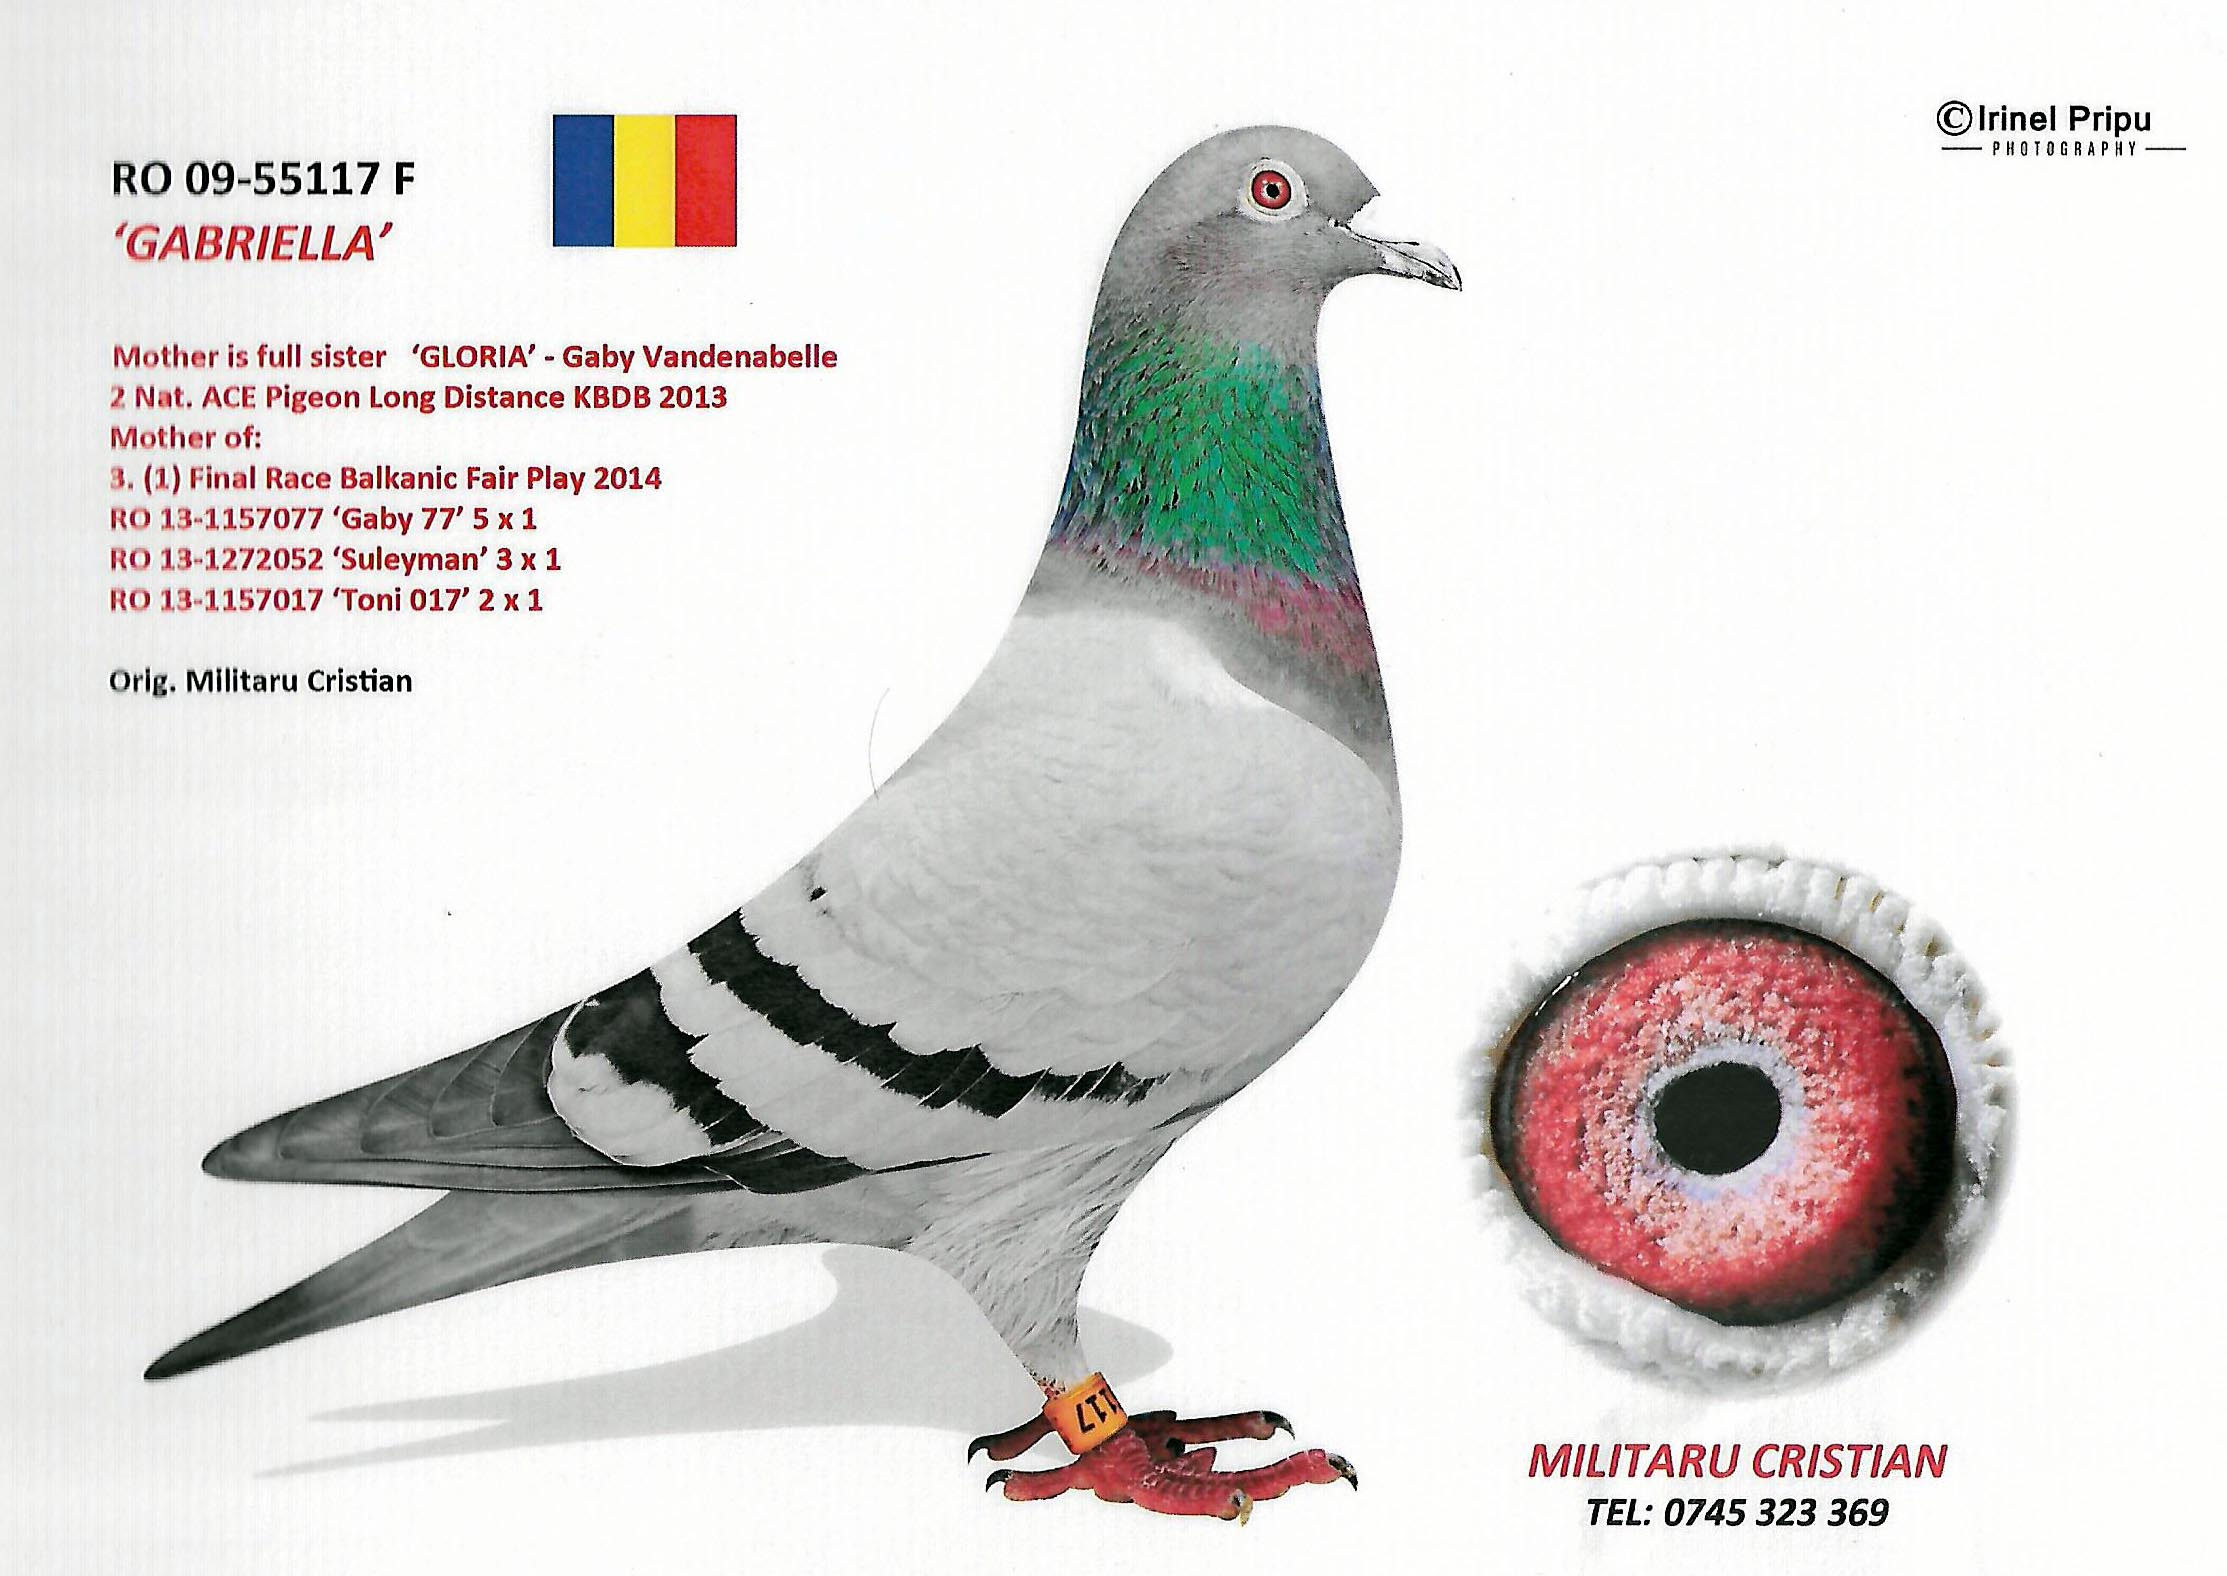 RO 15 66974 ROGER - Father 1. prov Ace-pigeon FNCPR Arges Long Distance